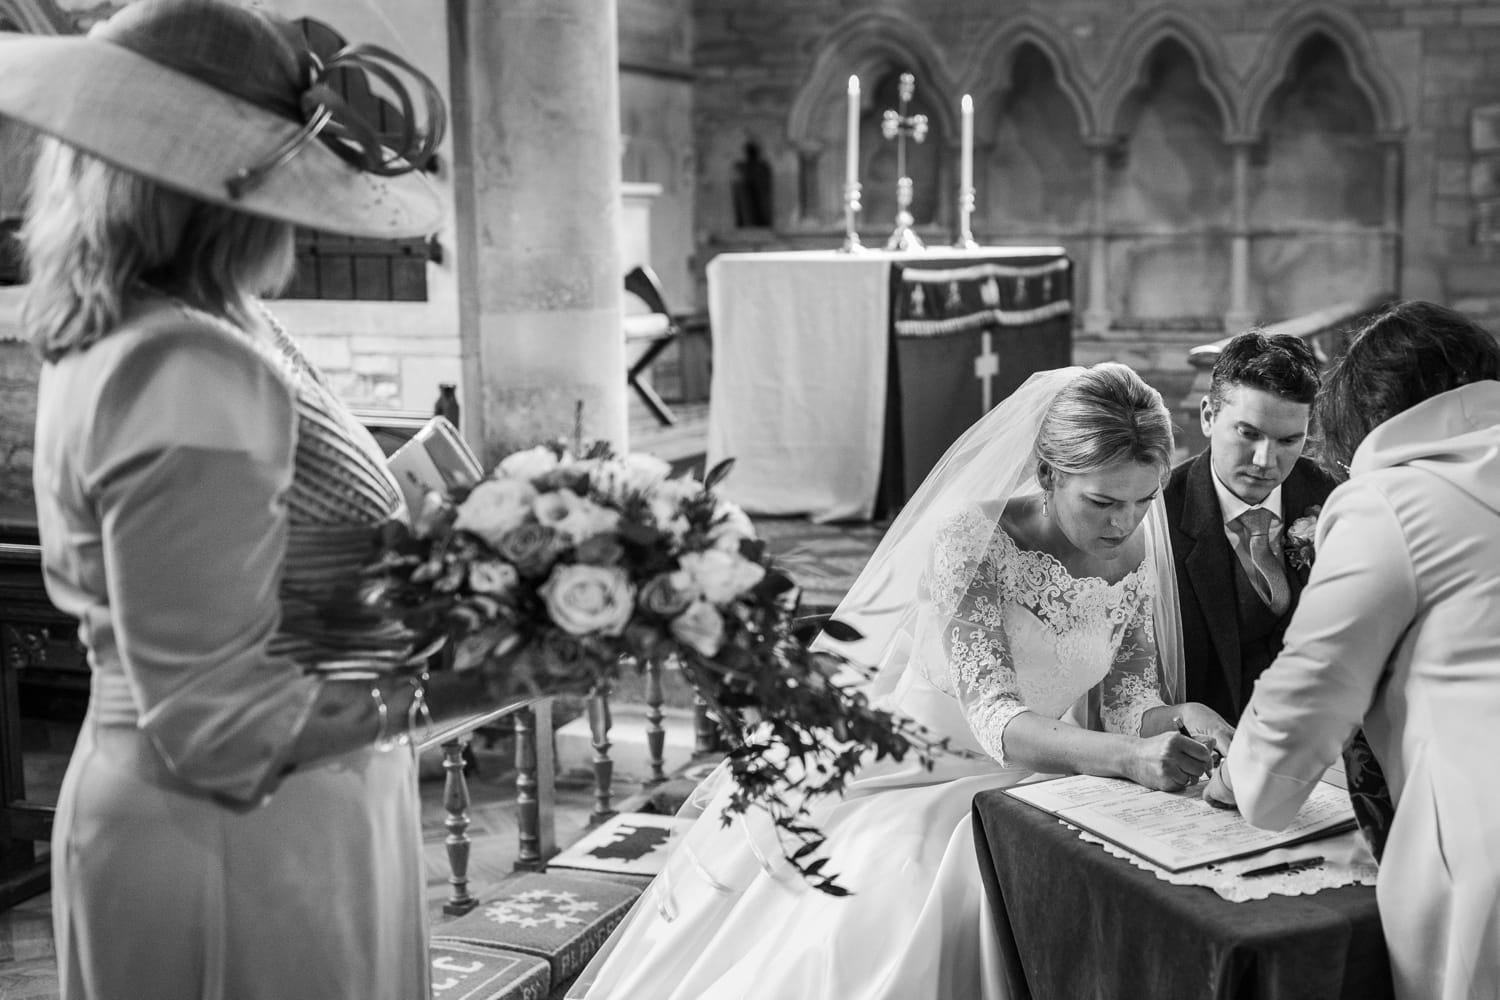 Signing the wedding register at Church of Saint John the Baptist, Colerne in the Cotswolds